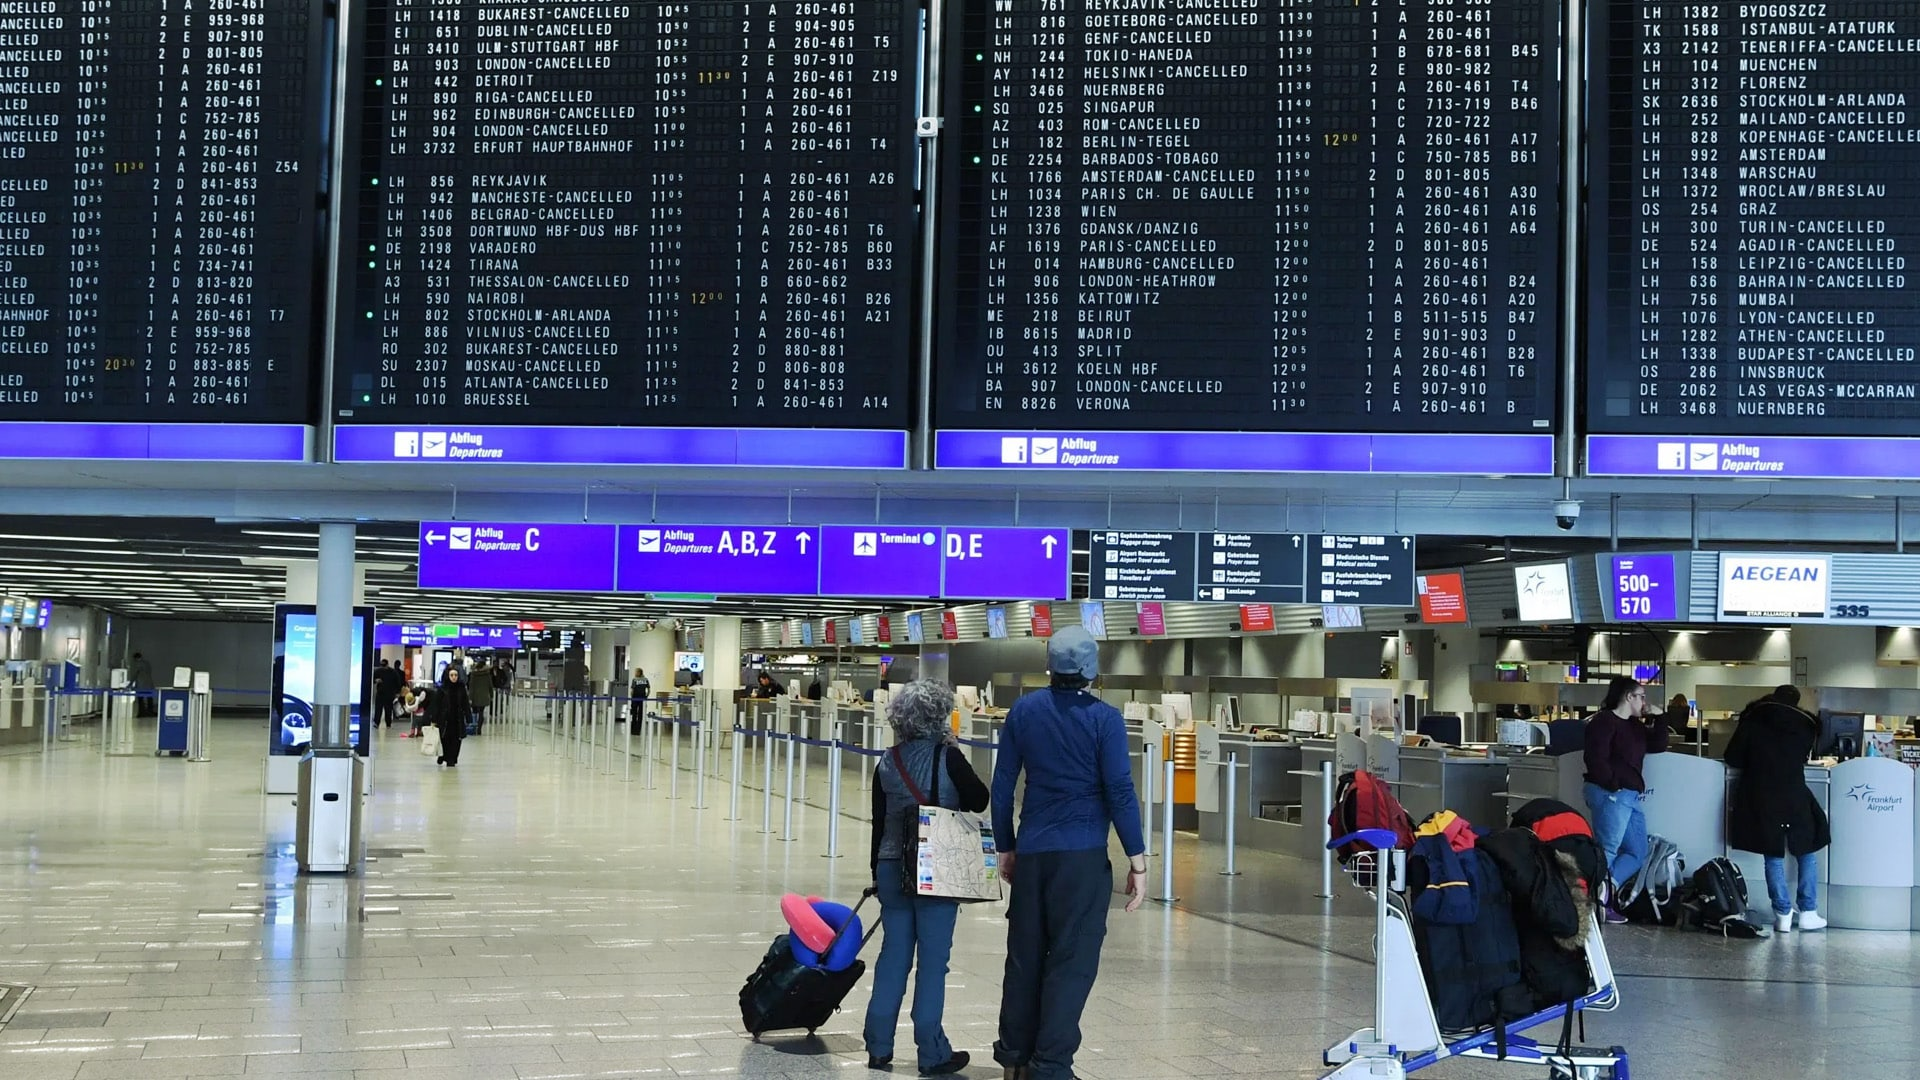 Indians may put off travel plans amid spread of new virus strain, possible flight bans: Survey